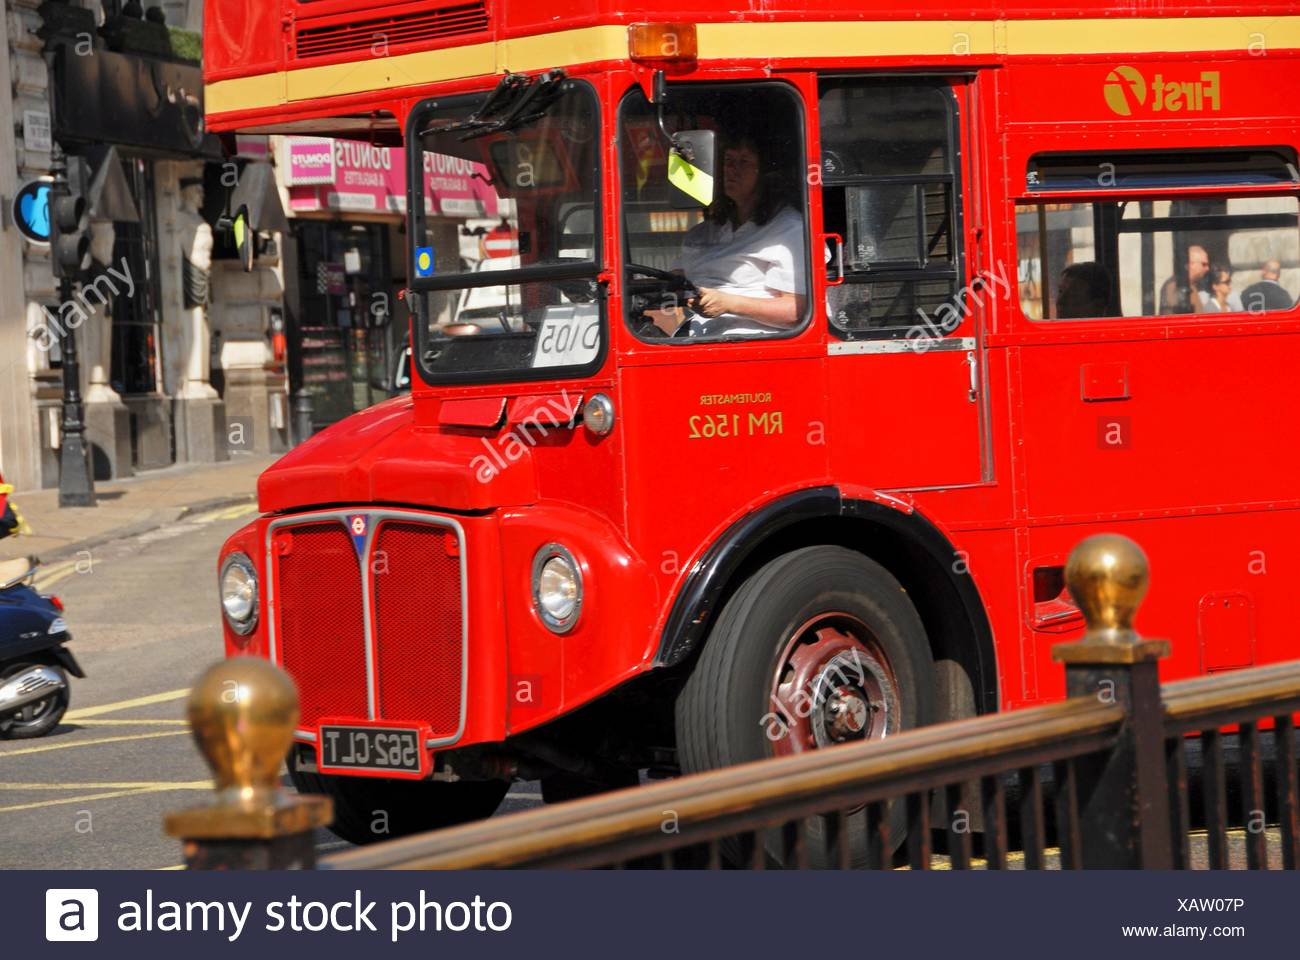 An old AEC bus still running. London, England, Great Britain, Europe. - Stock Image